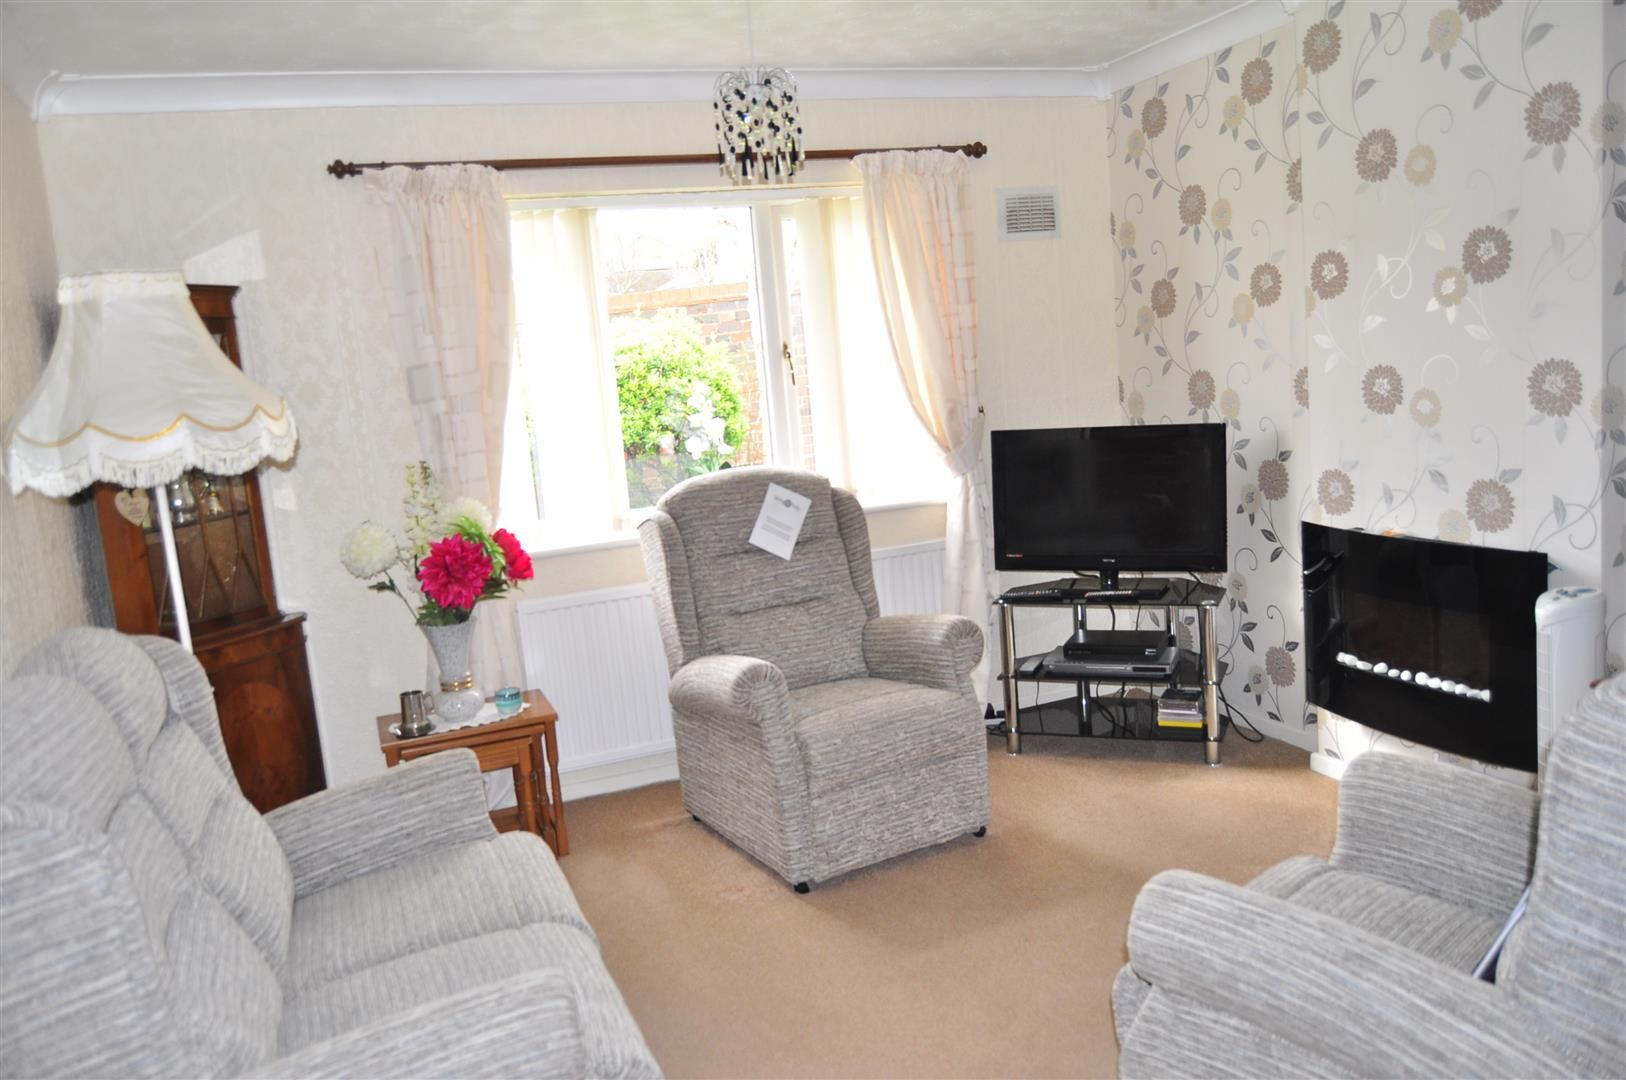 2 bed terraced-bungalow for sale  - Property Image 2